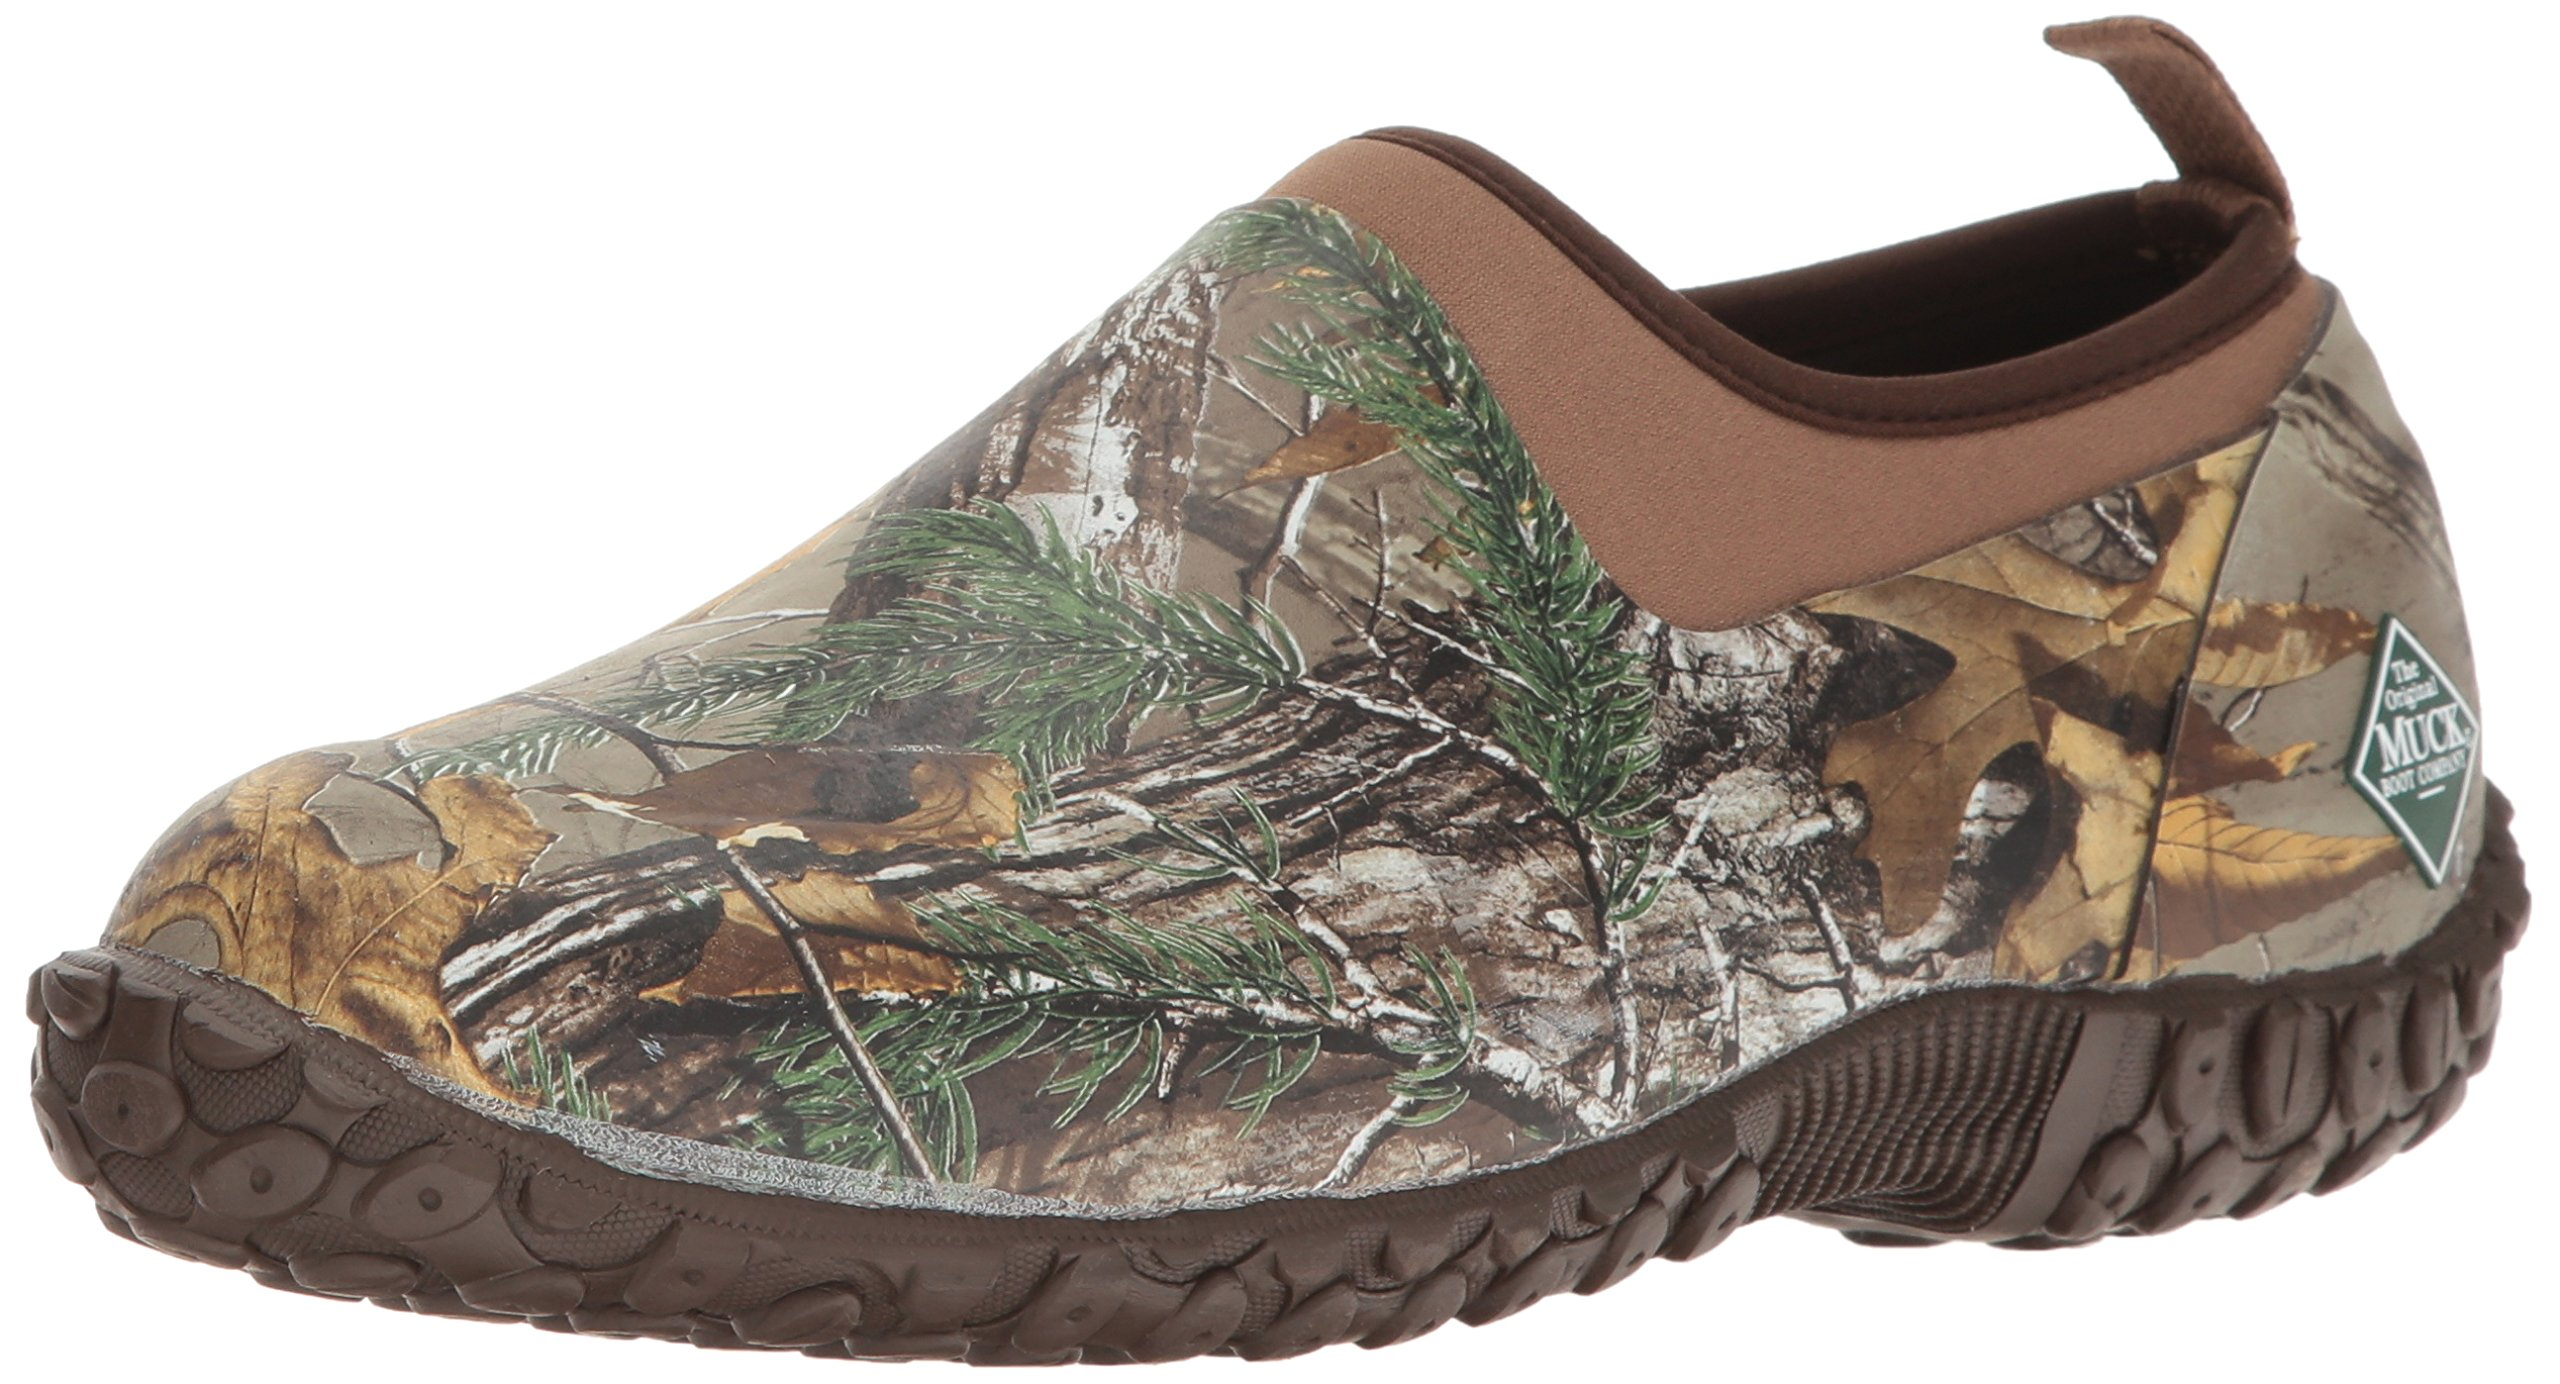 Muckster ll Men's Rubber Garden Shoes,Realtree XTRA,7 US/7-7.5 M US